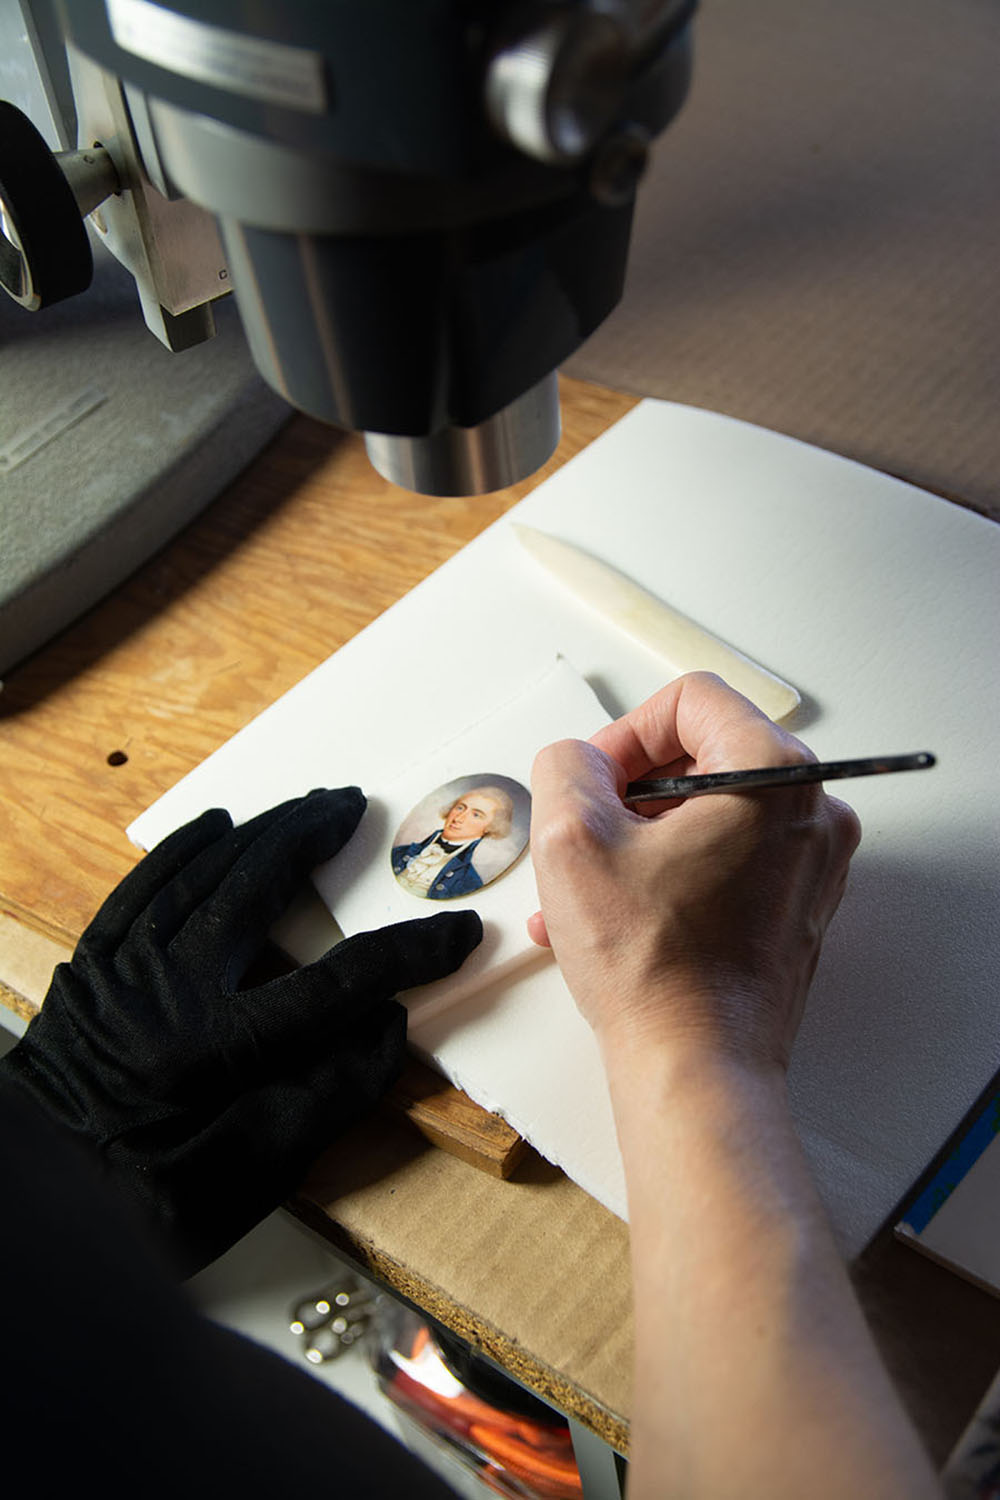 Inpainting losses under magnification. Image courtesy of Alba Art Conservation.